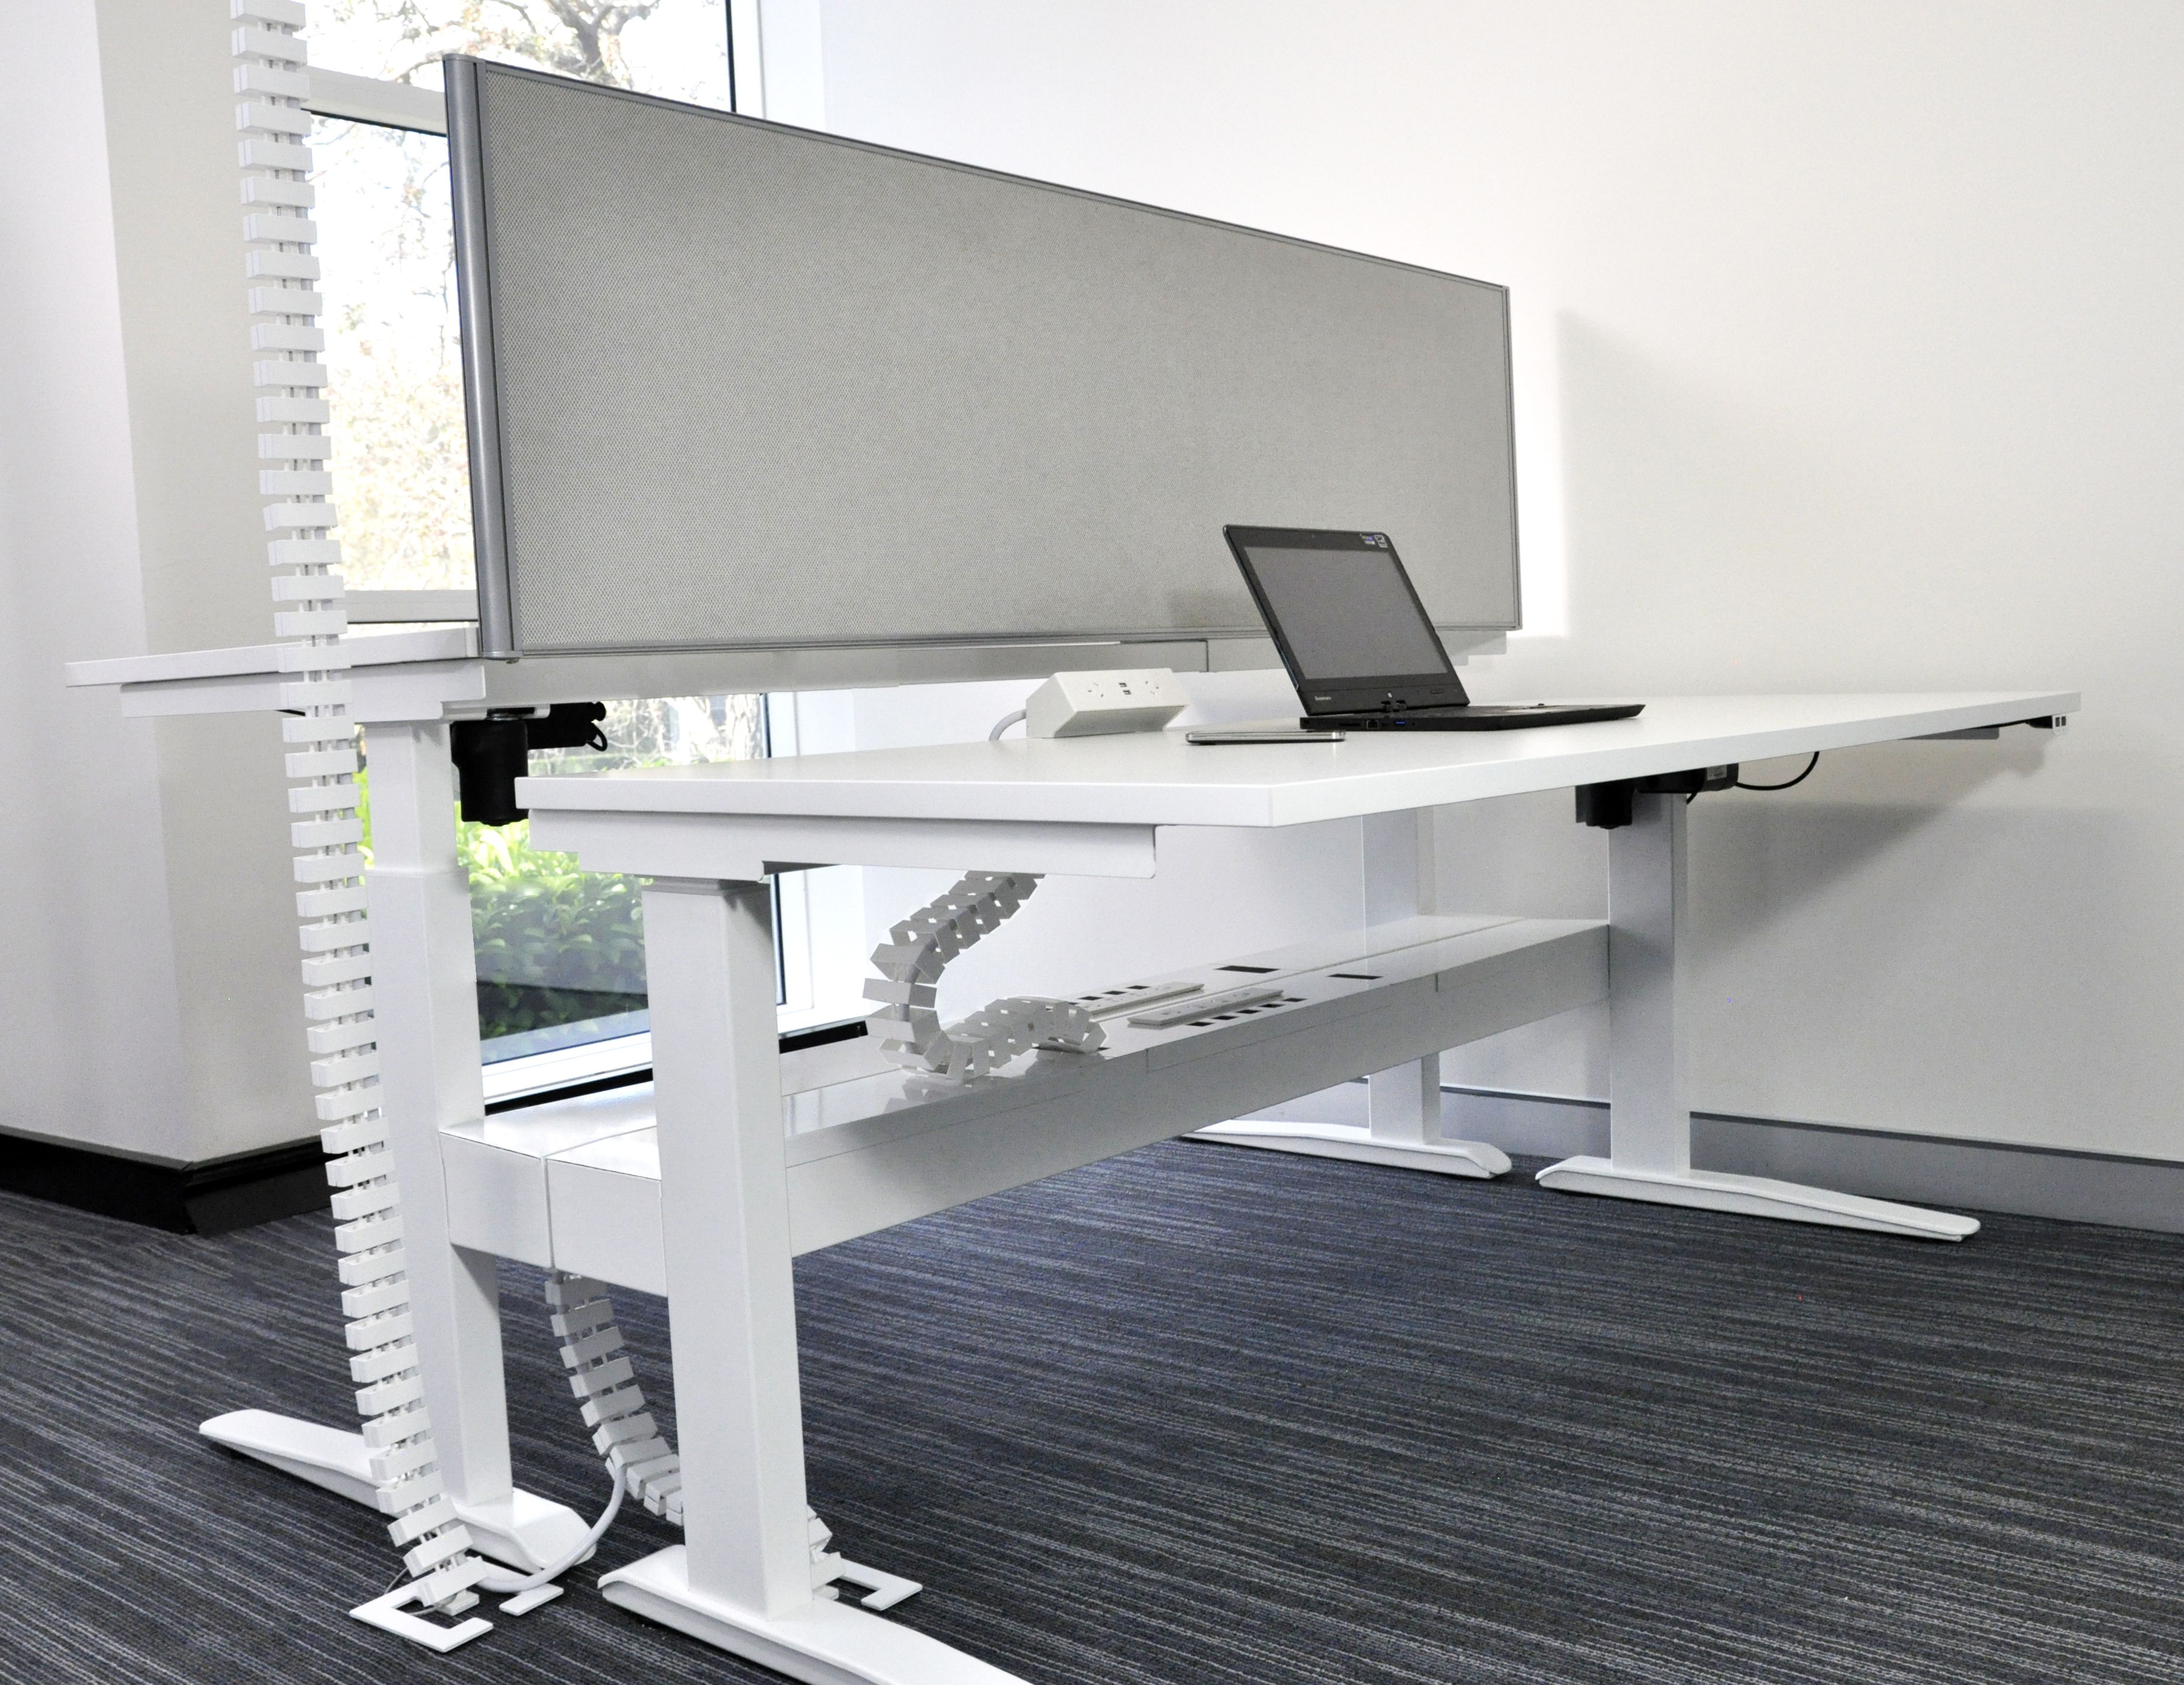 elsafe cable snake cube mx channel desk kits. see more at www